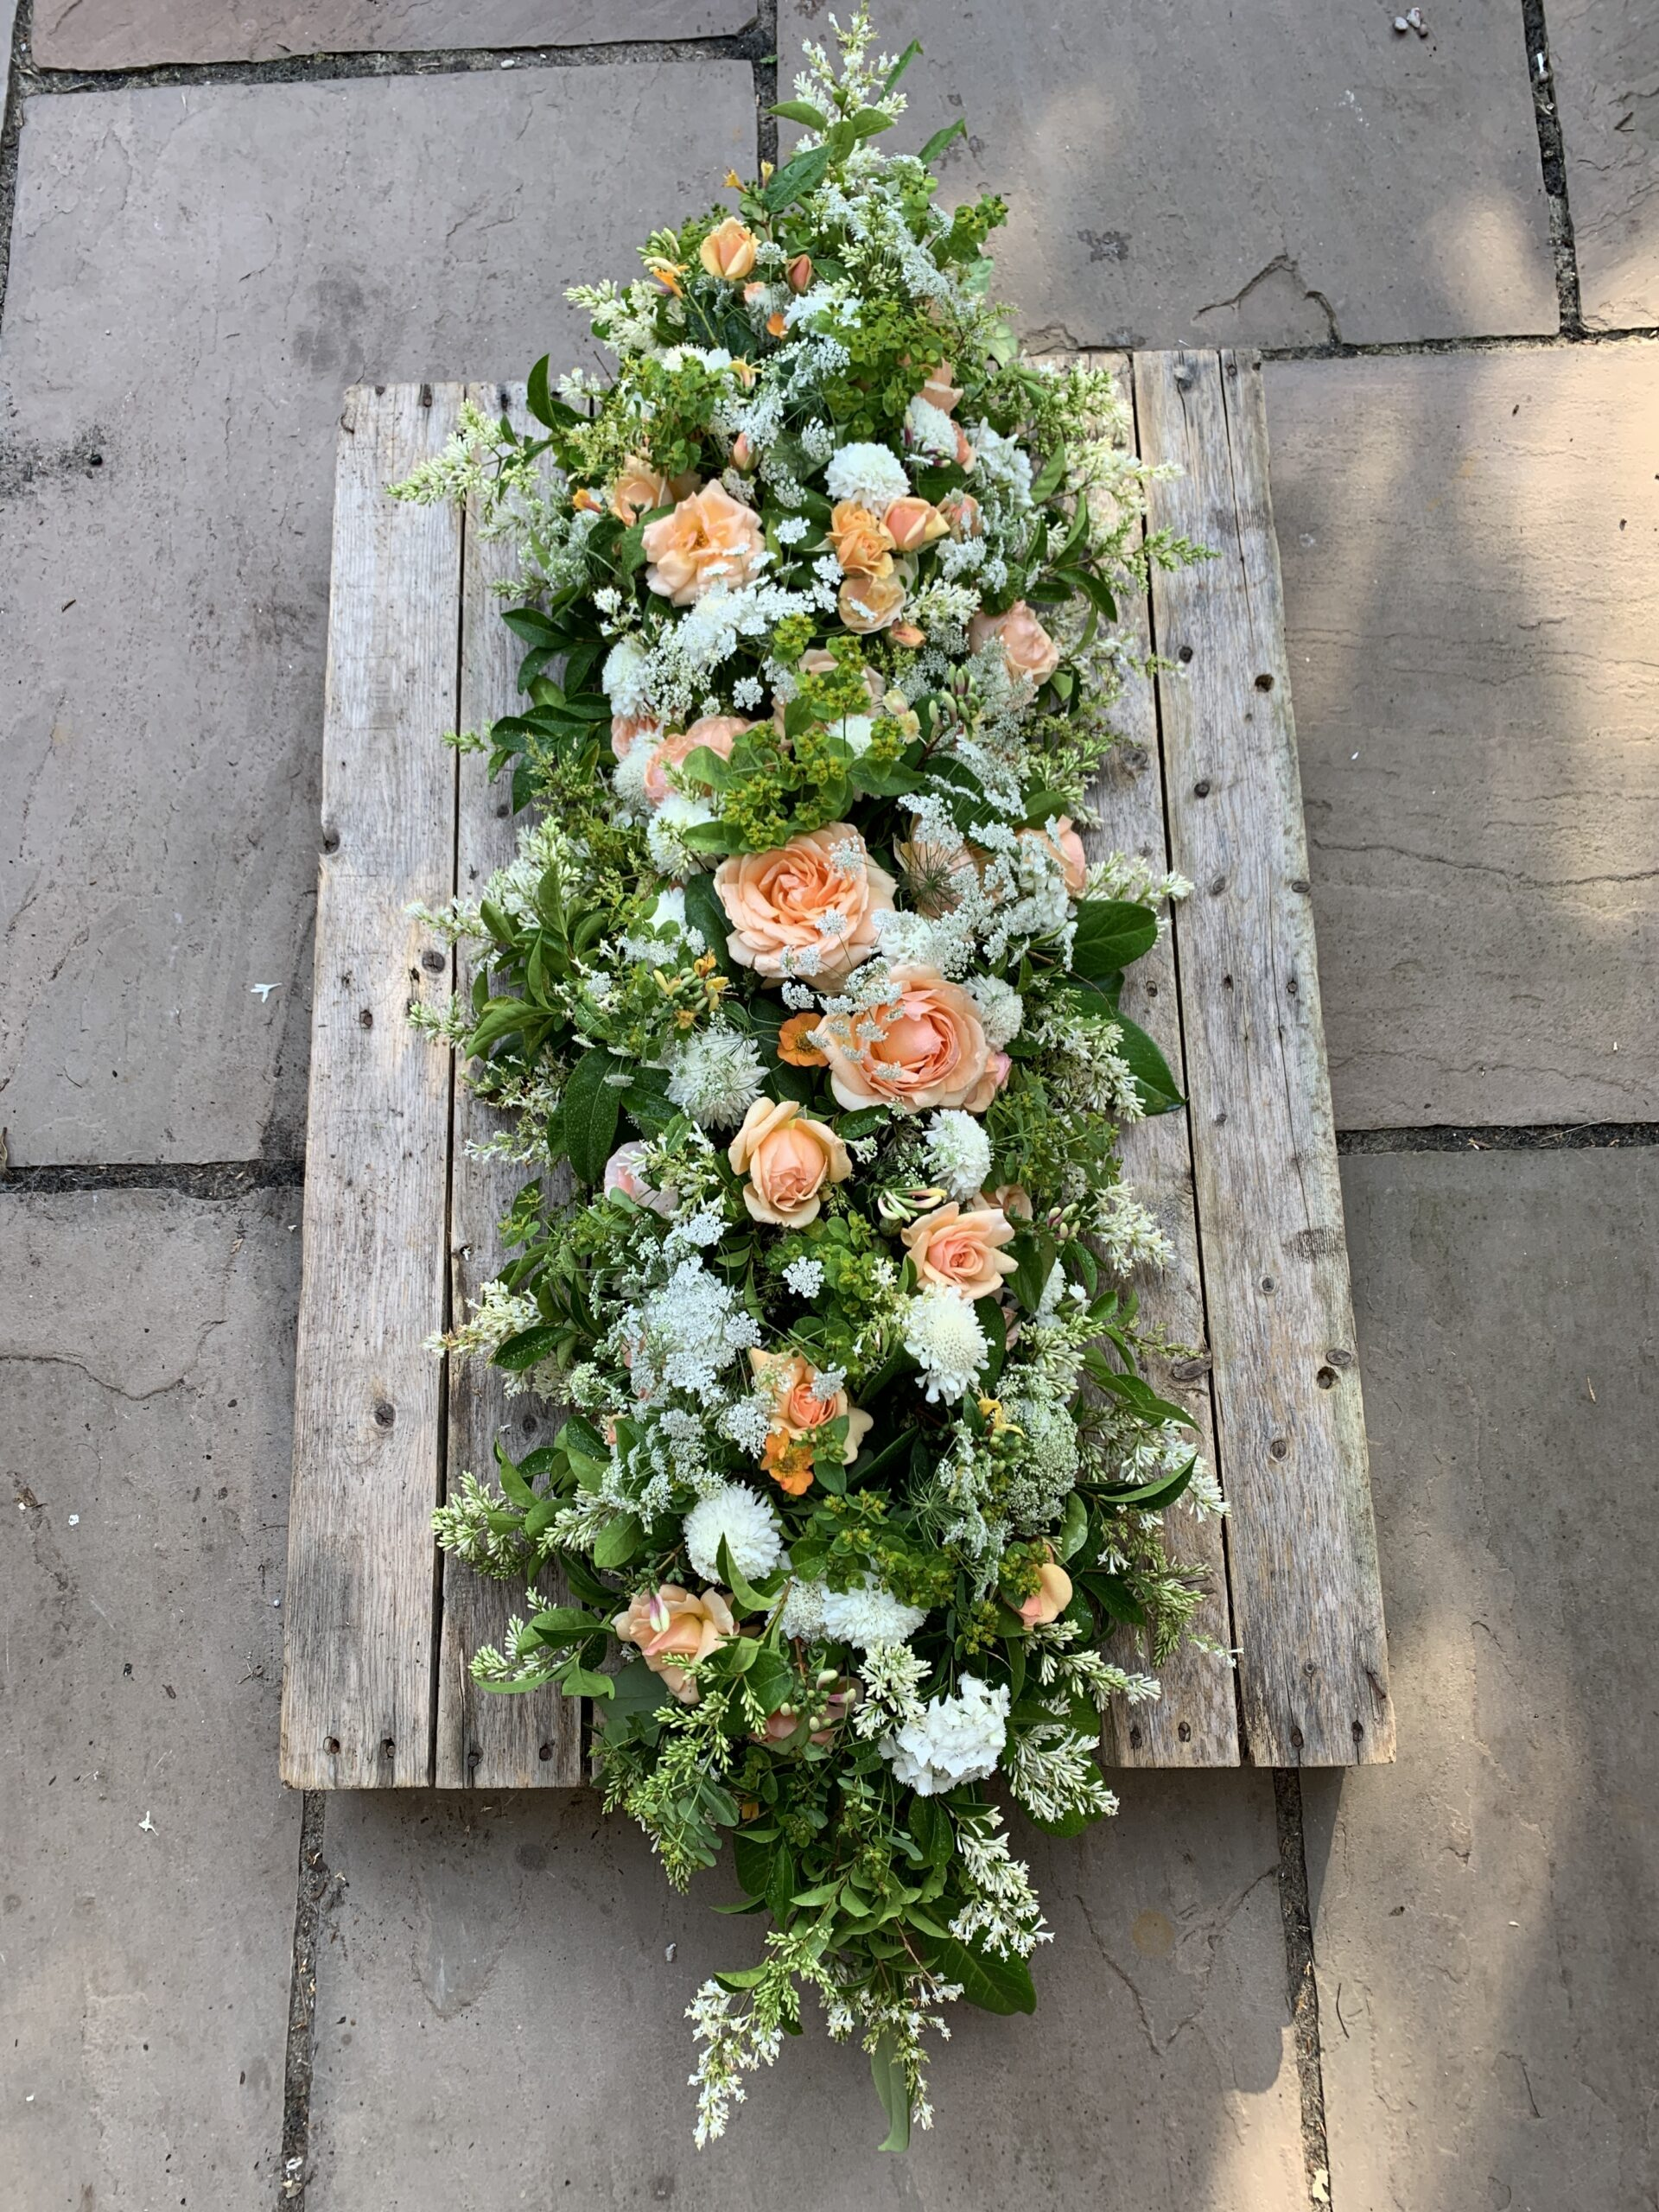 A seasonal casket arrangement of British flowers designed by The Posy Patch